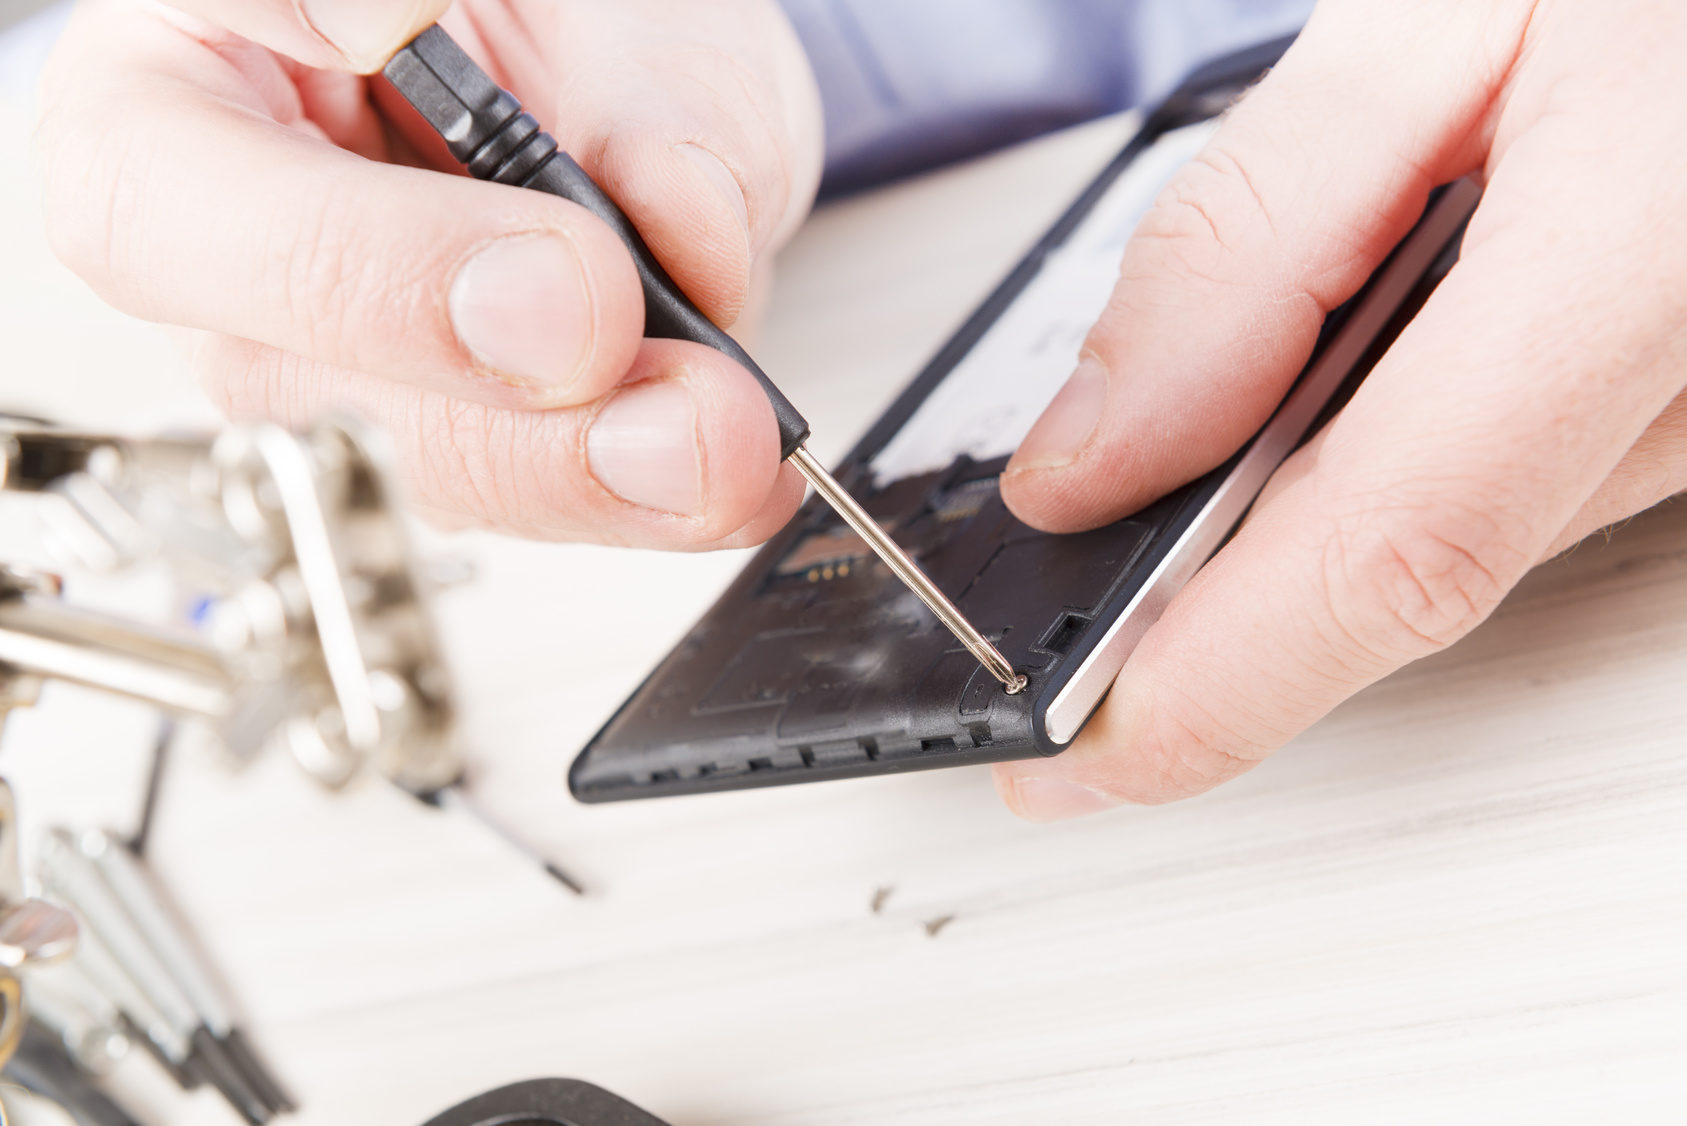 A man repairing mobile phone in the electronic workshop